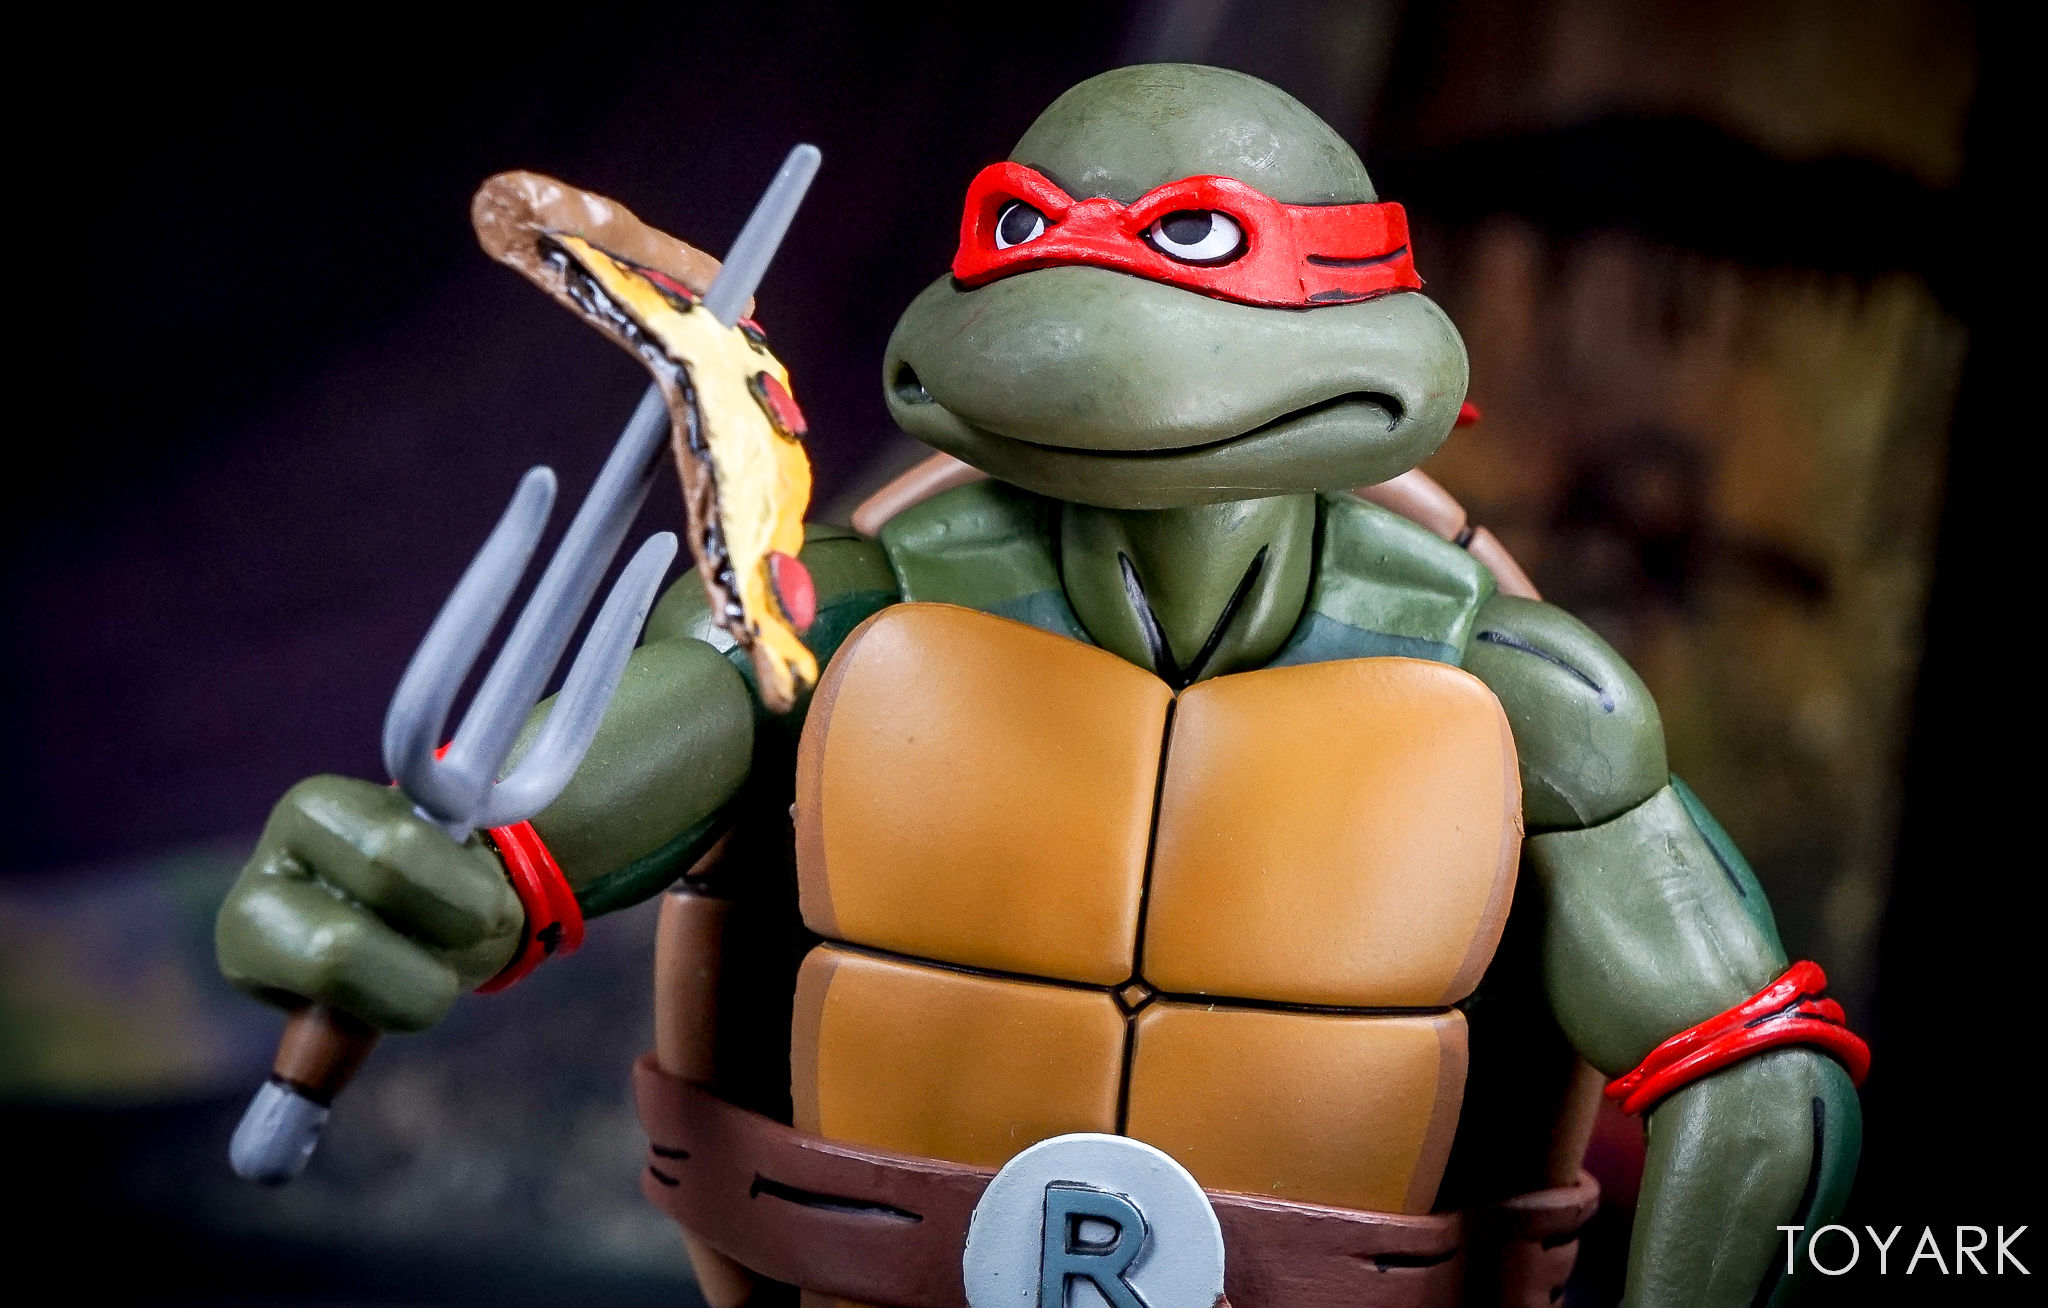 http://news.toyark.com/wp-content/uploads/sites/4/2017/07/NECA-SDCC-2017-Toon-TMNT-032.jpg